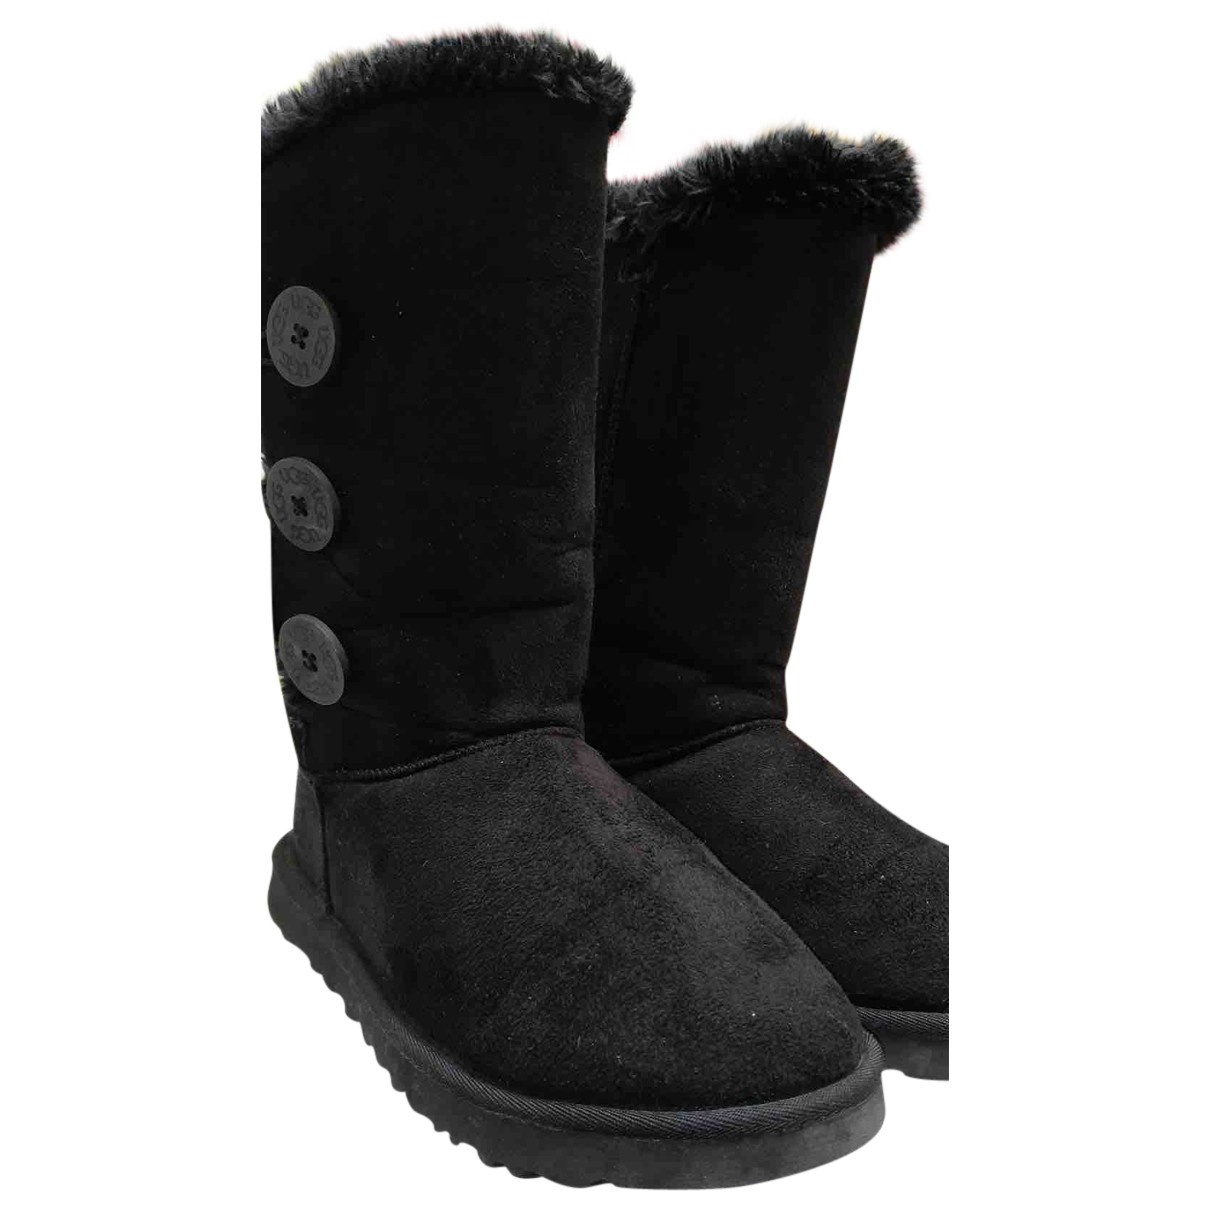 Ugg N Black Leather Boots for Women 39 EU